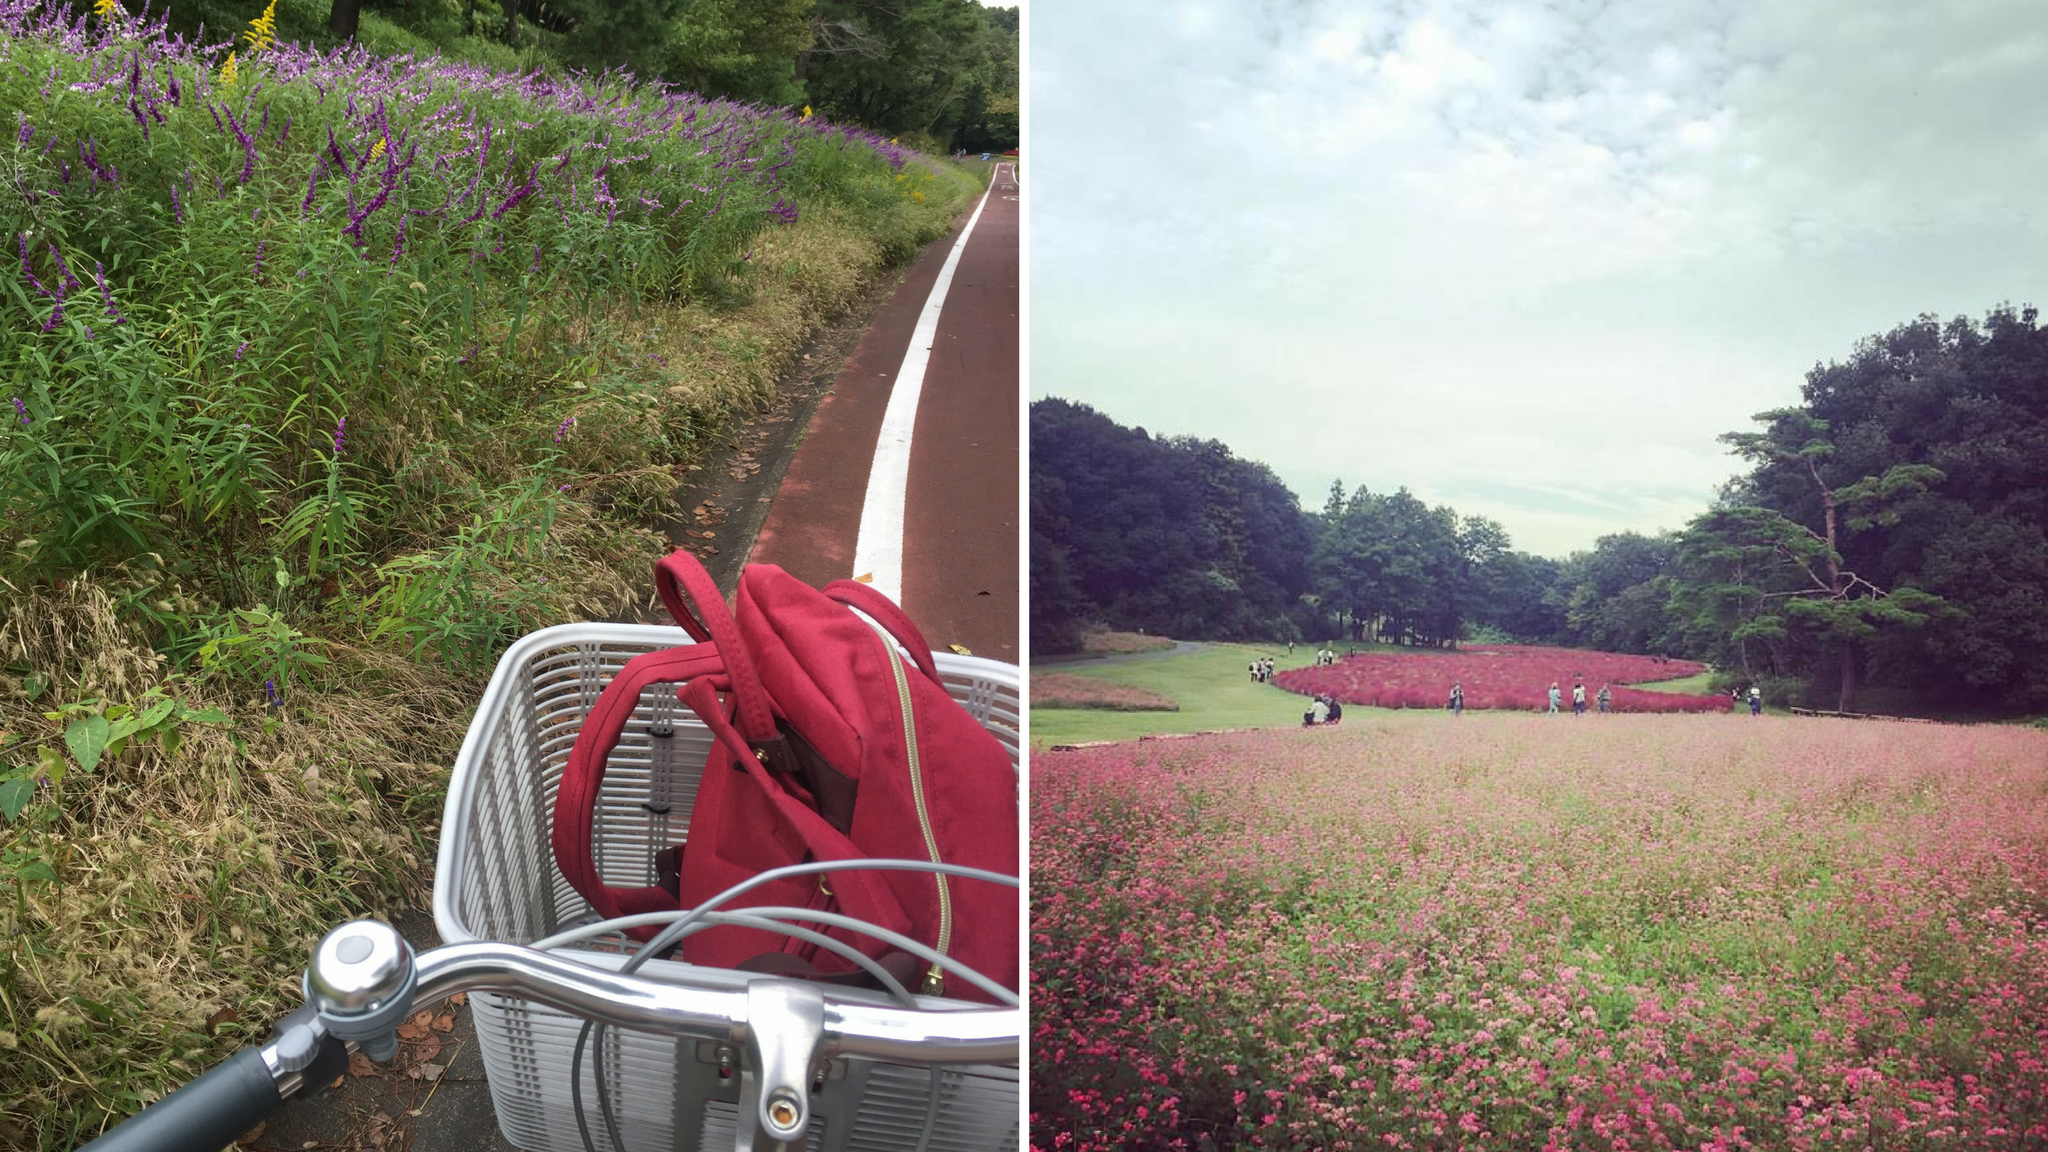 c285d5482 Shinrin Koen Cycle Course for Car- and Crowd-Free Cycling near Tokyo ...